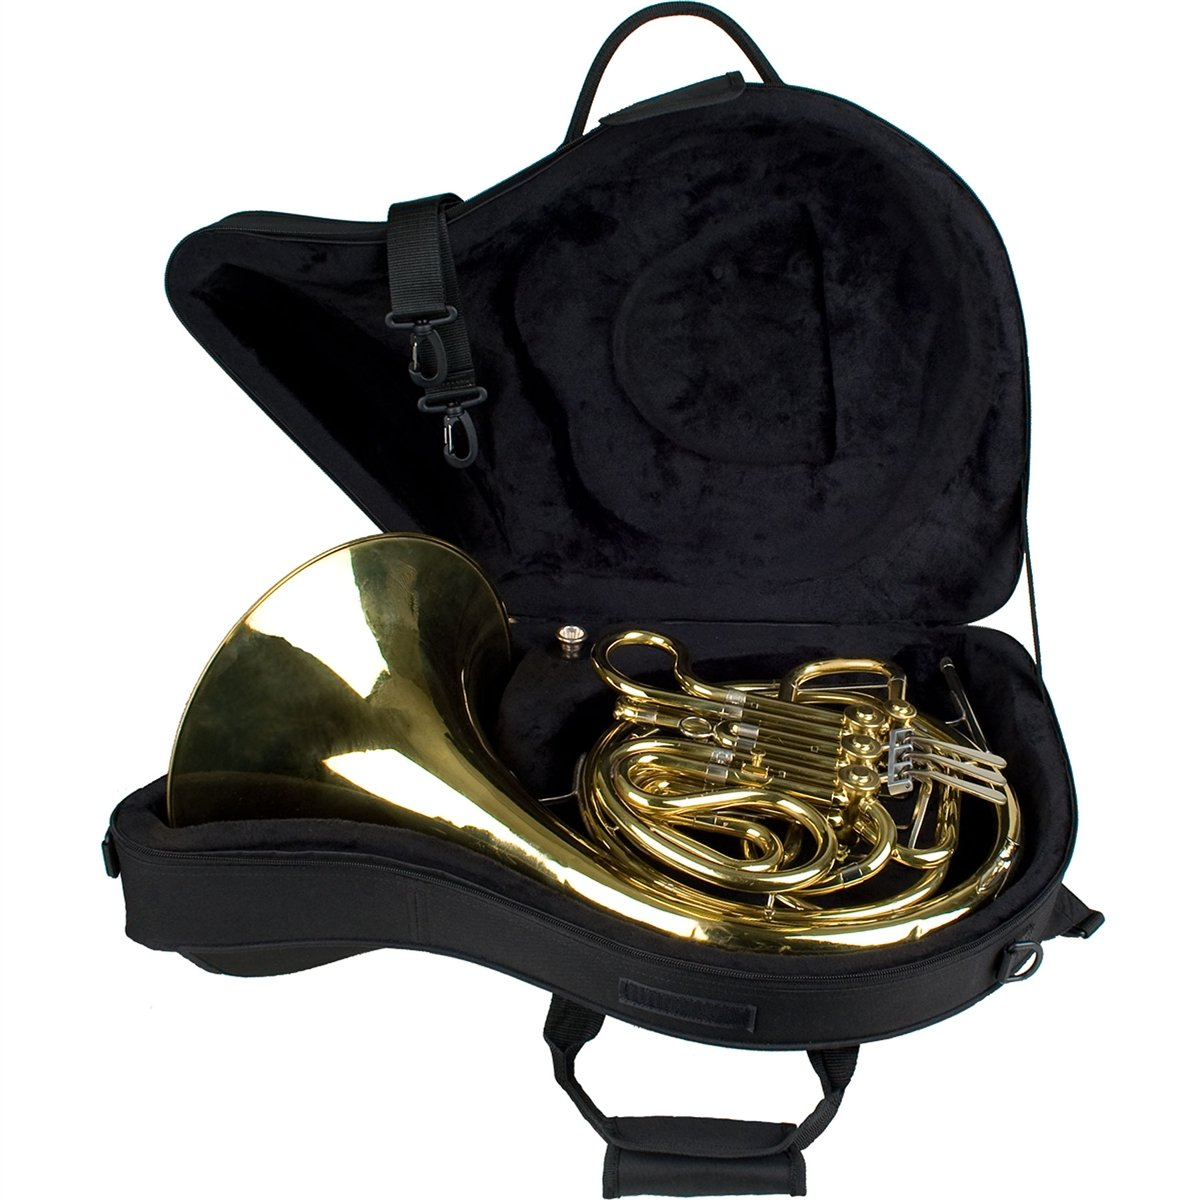 Protec - French Horn Fixed Bell MAX Case (Contoured)-Case-Protec-Music Elements